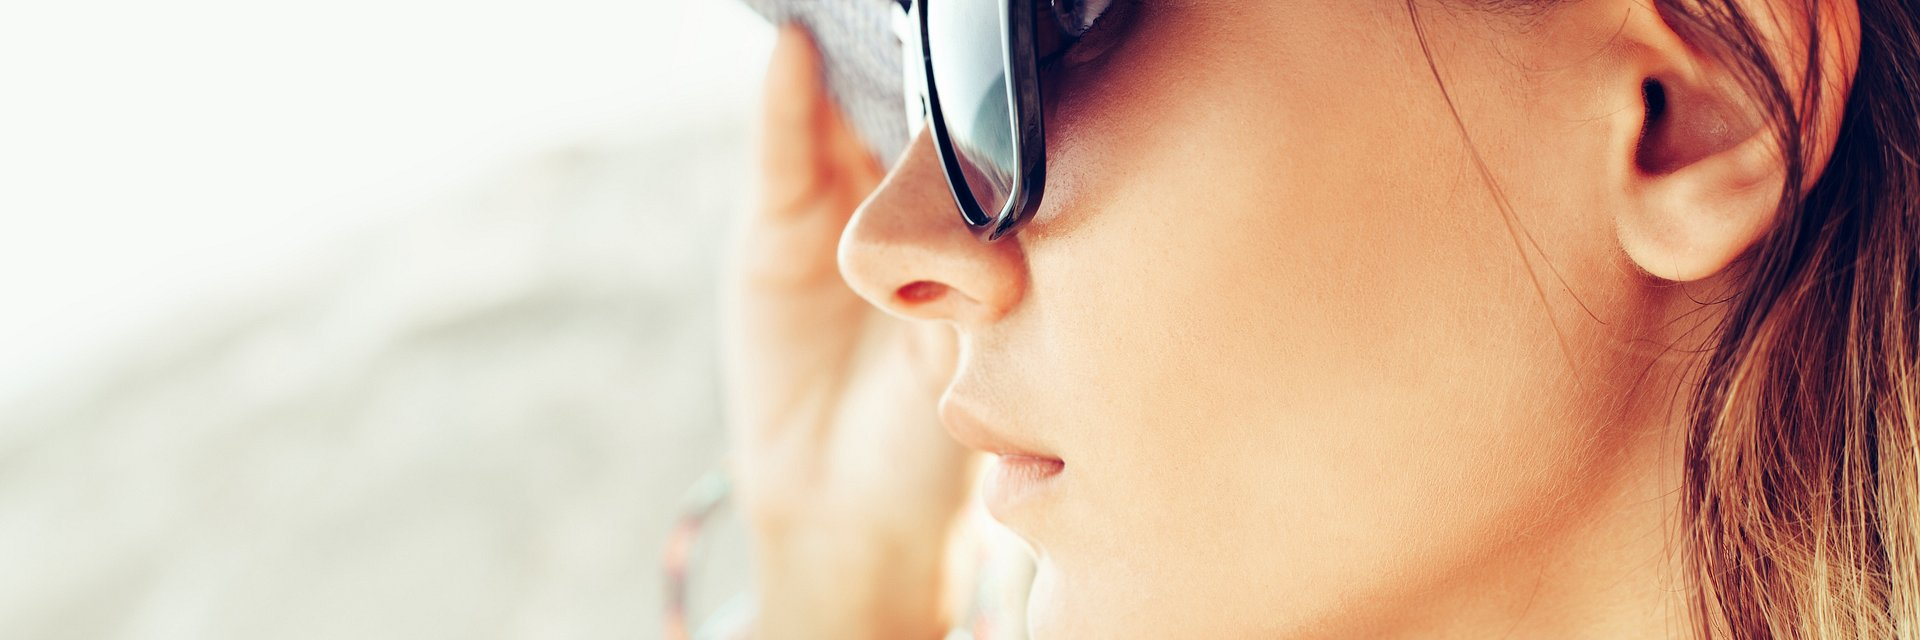 Protecting Eyes From Sun Exposure